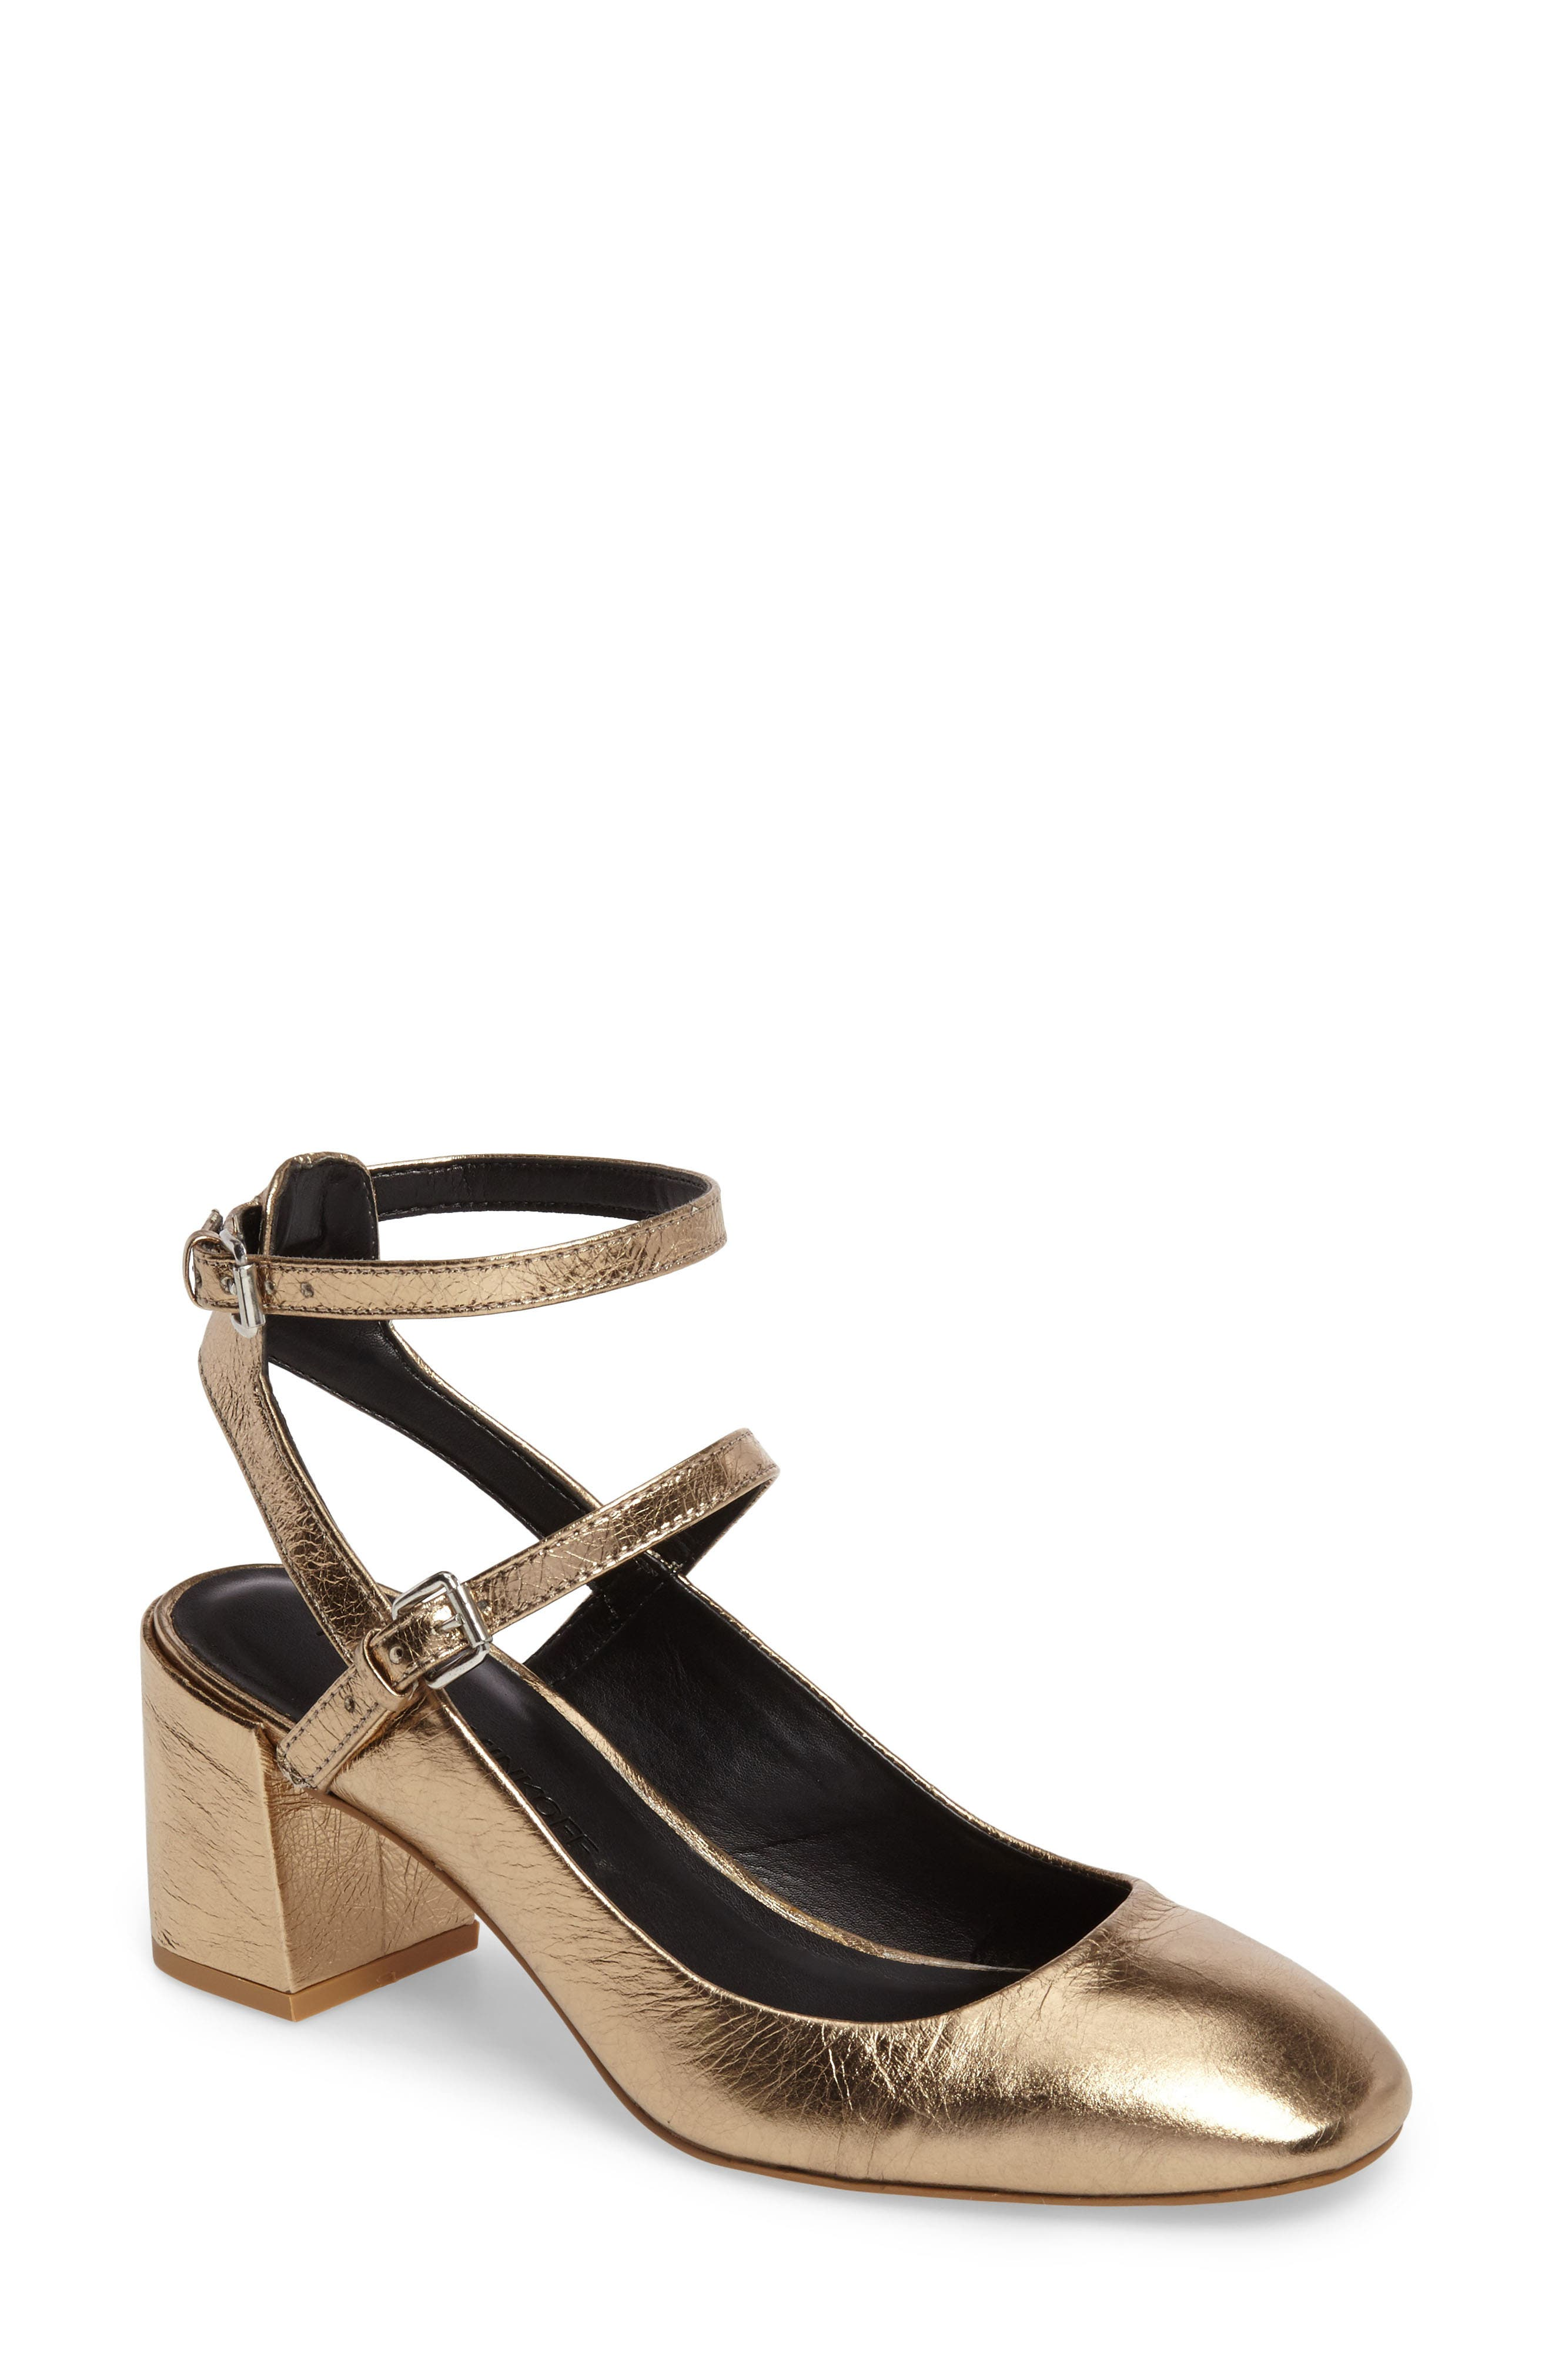 Alternate Image 1 Selected - Rebecca Minkoff 'Brooke' Ankle Strap Pump (Women)